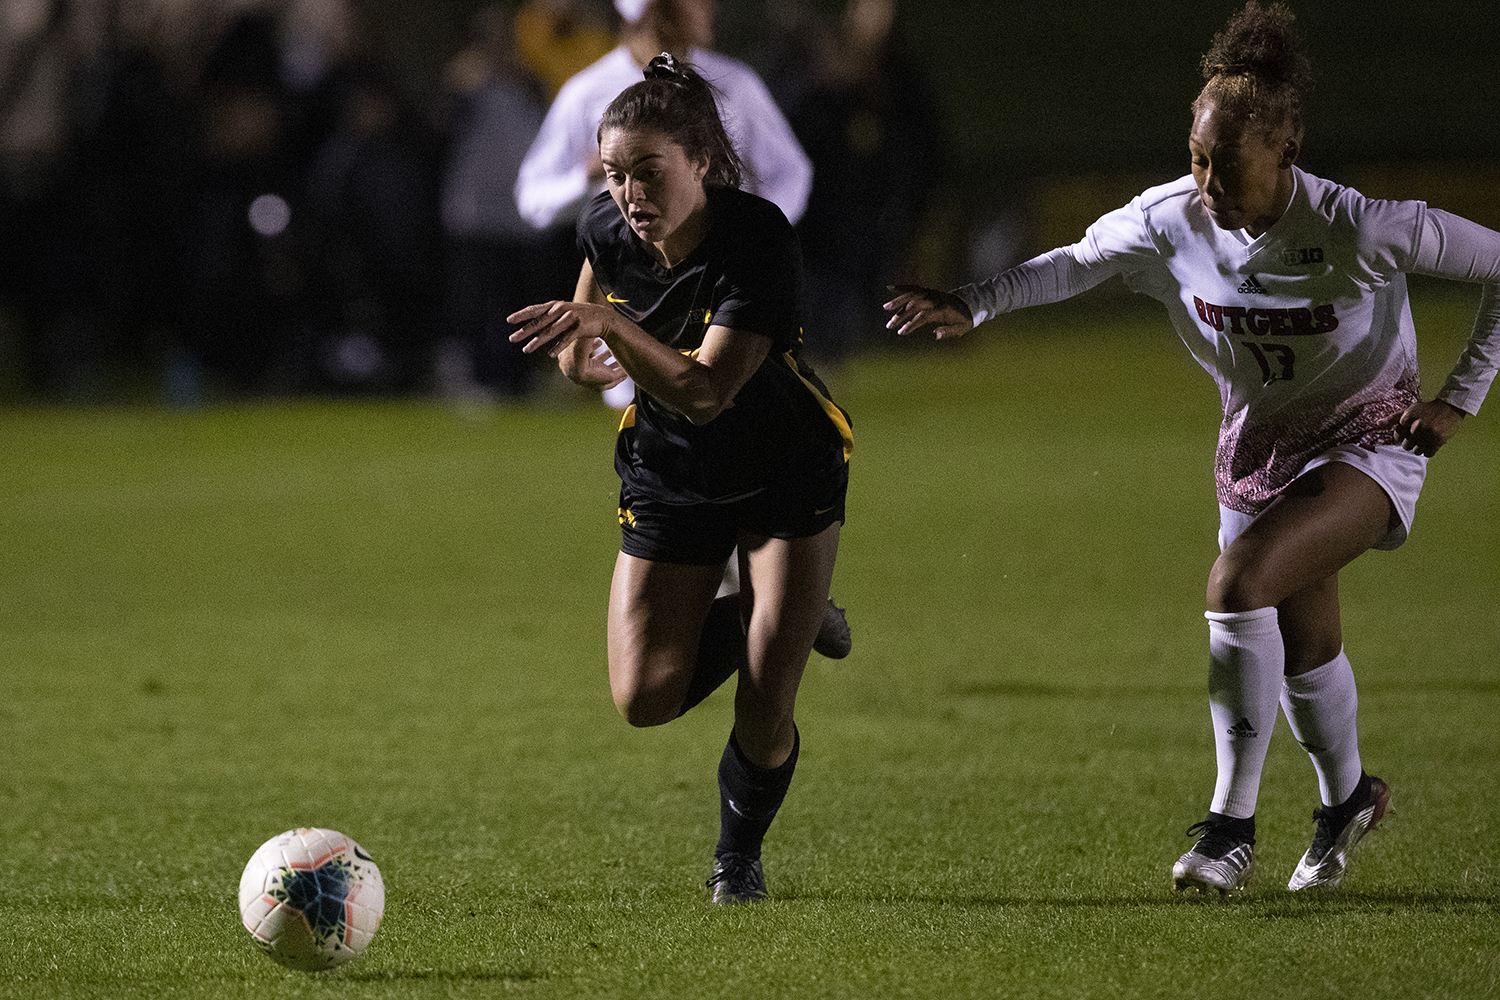 Iowa forward Devin Burns chases down the ball during the Iowa v Rutgers soccer game at the Iowa Soccer Complex on Friday, October 11, 2019. The Hawkeyes fell to the Scarlet Knights 0-1.